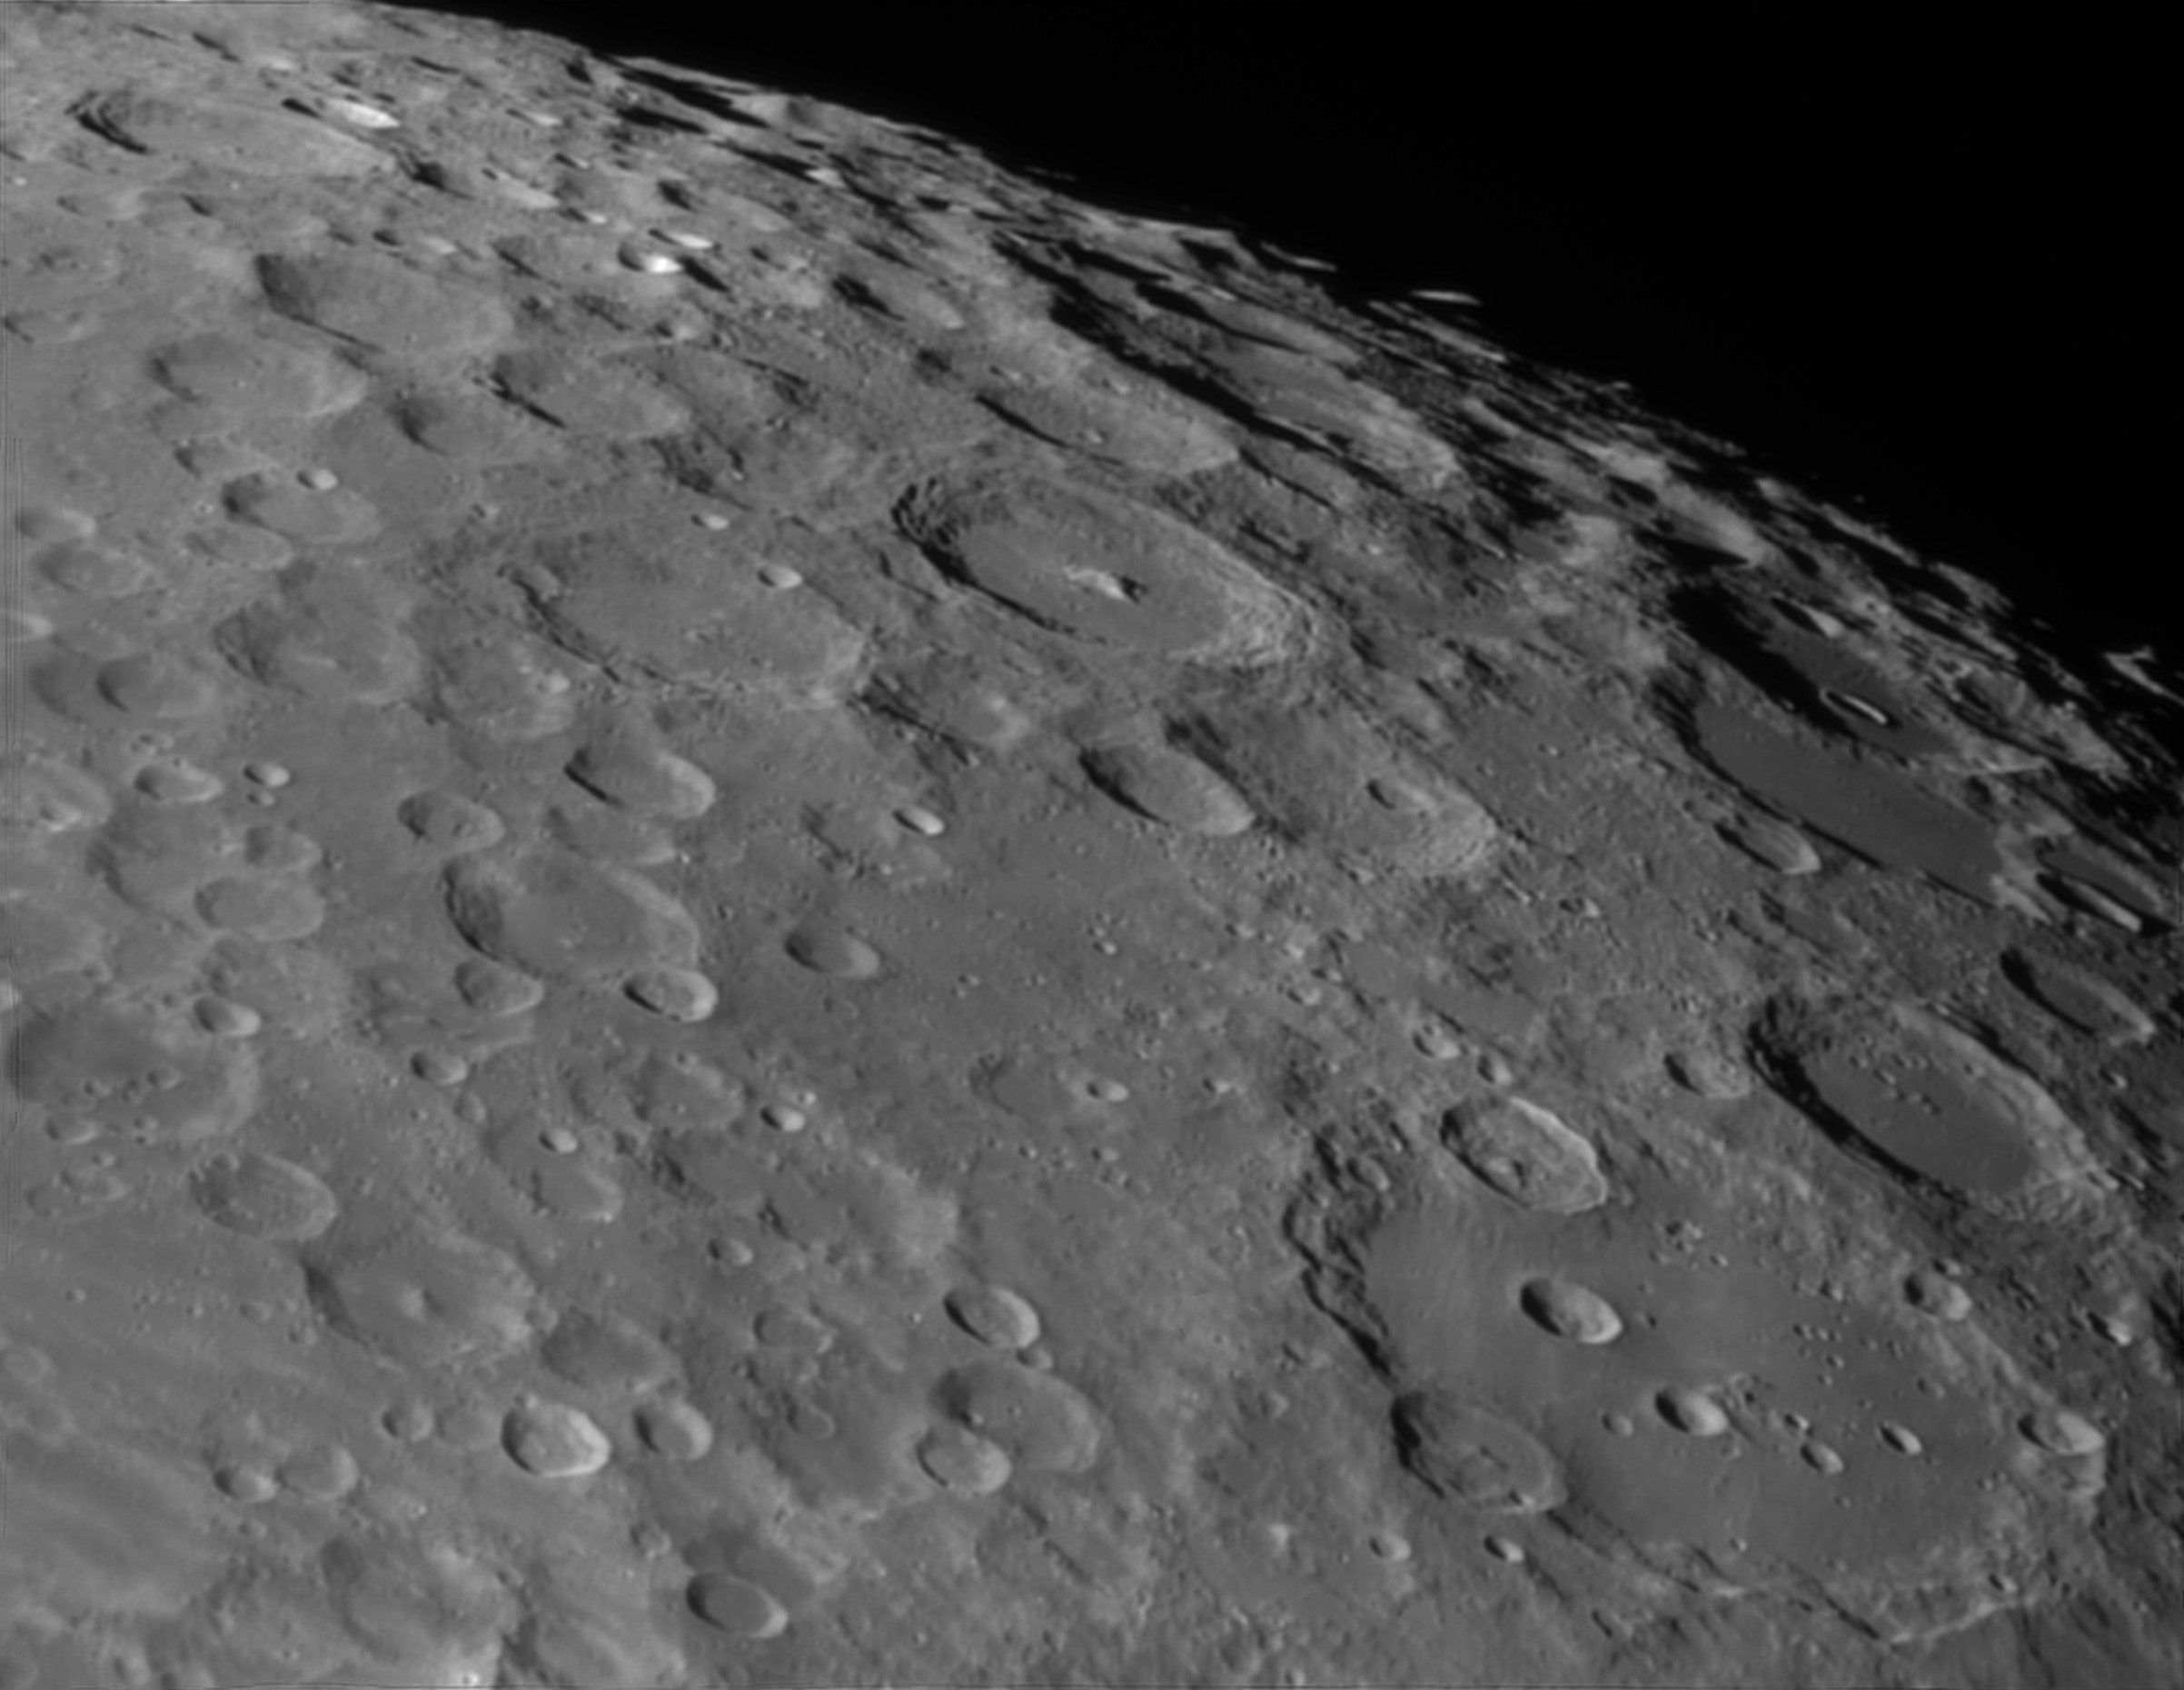 Clavius (lower right) 07.04.17